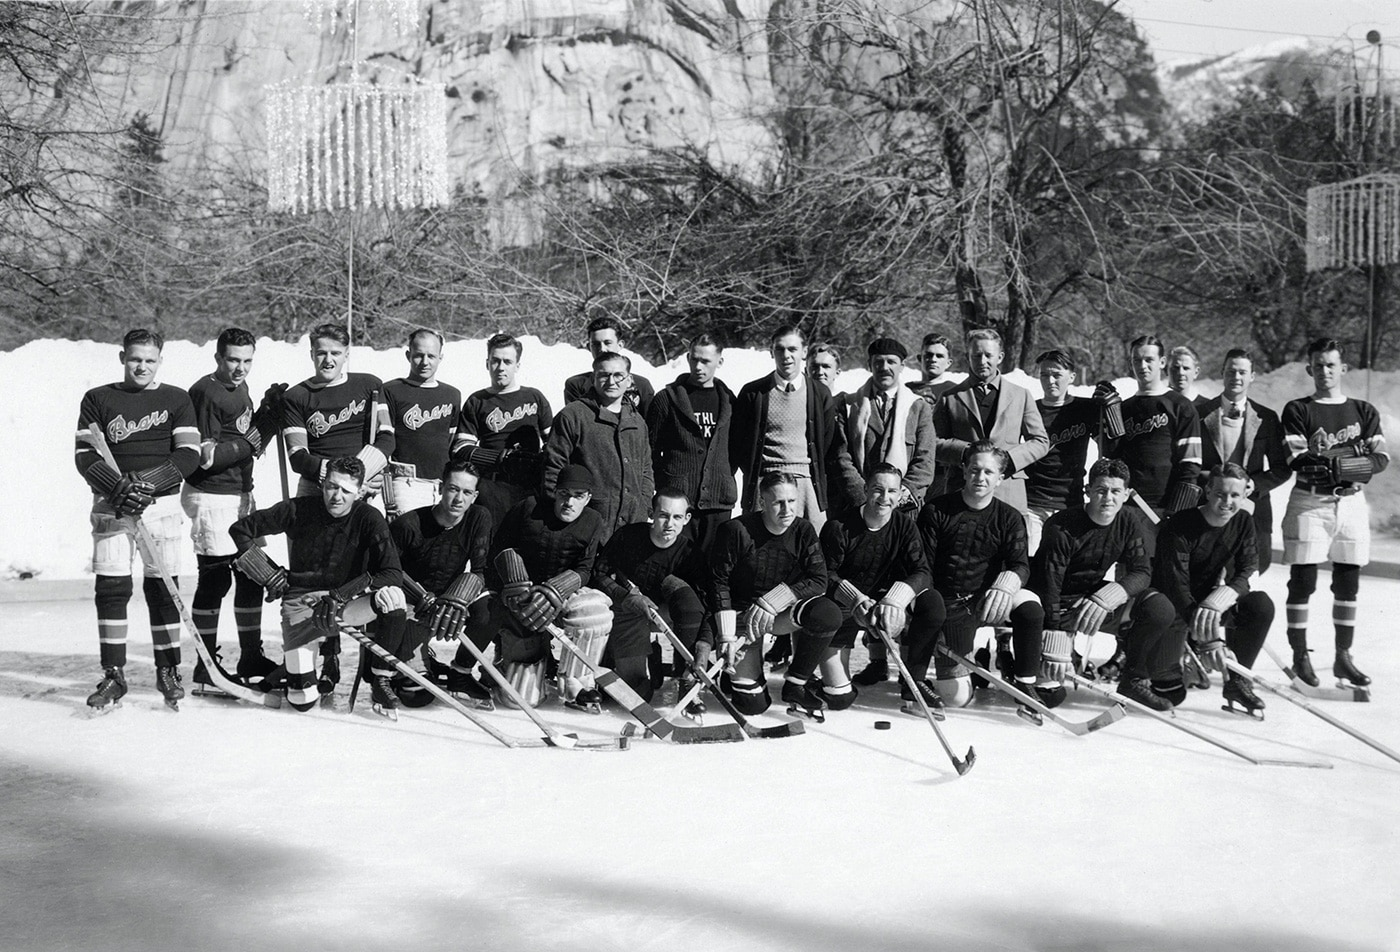 Canada - Ice Hockey Team